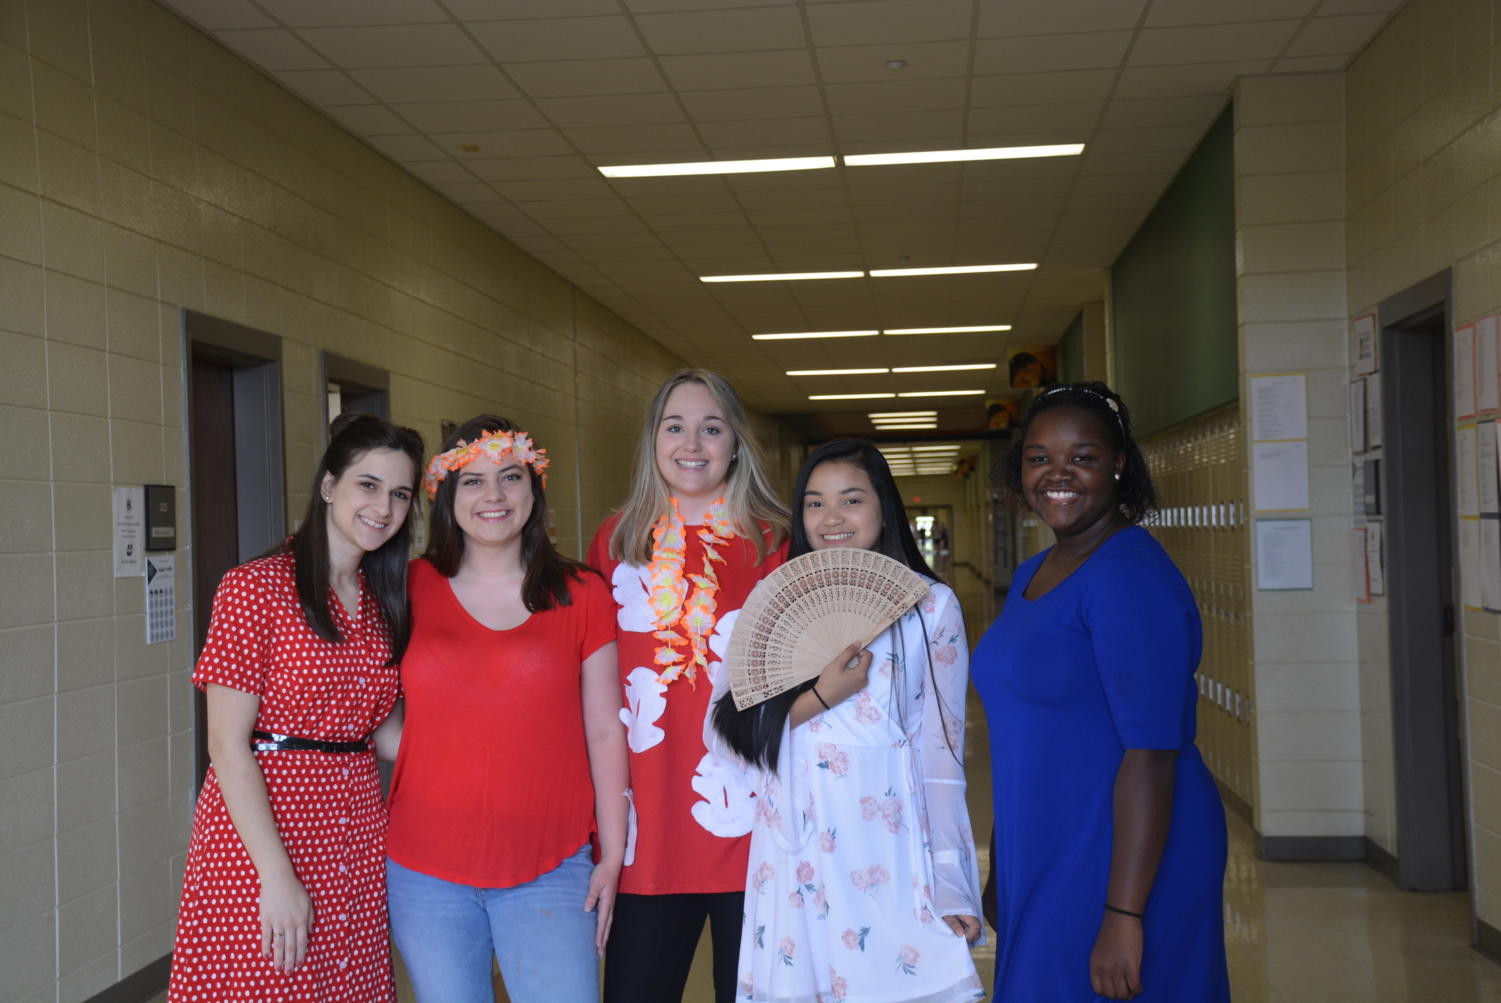 Students+in+journalism+and+newspaper+dressed+up+for+Disney+Day